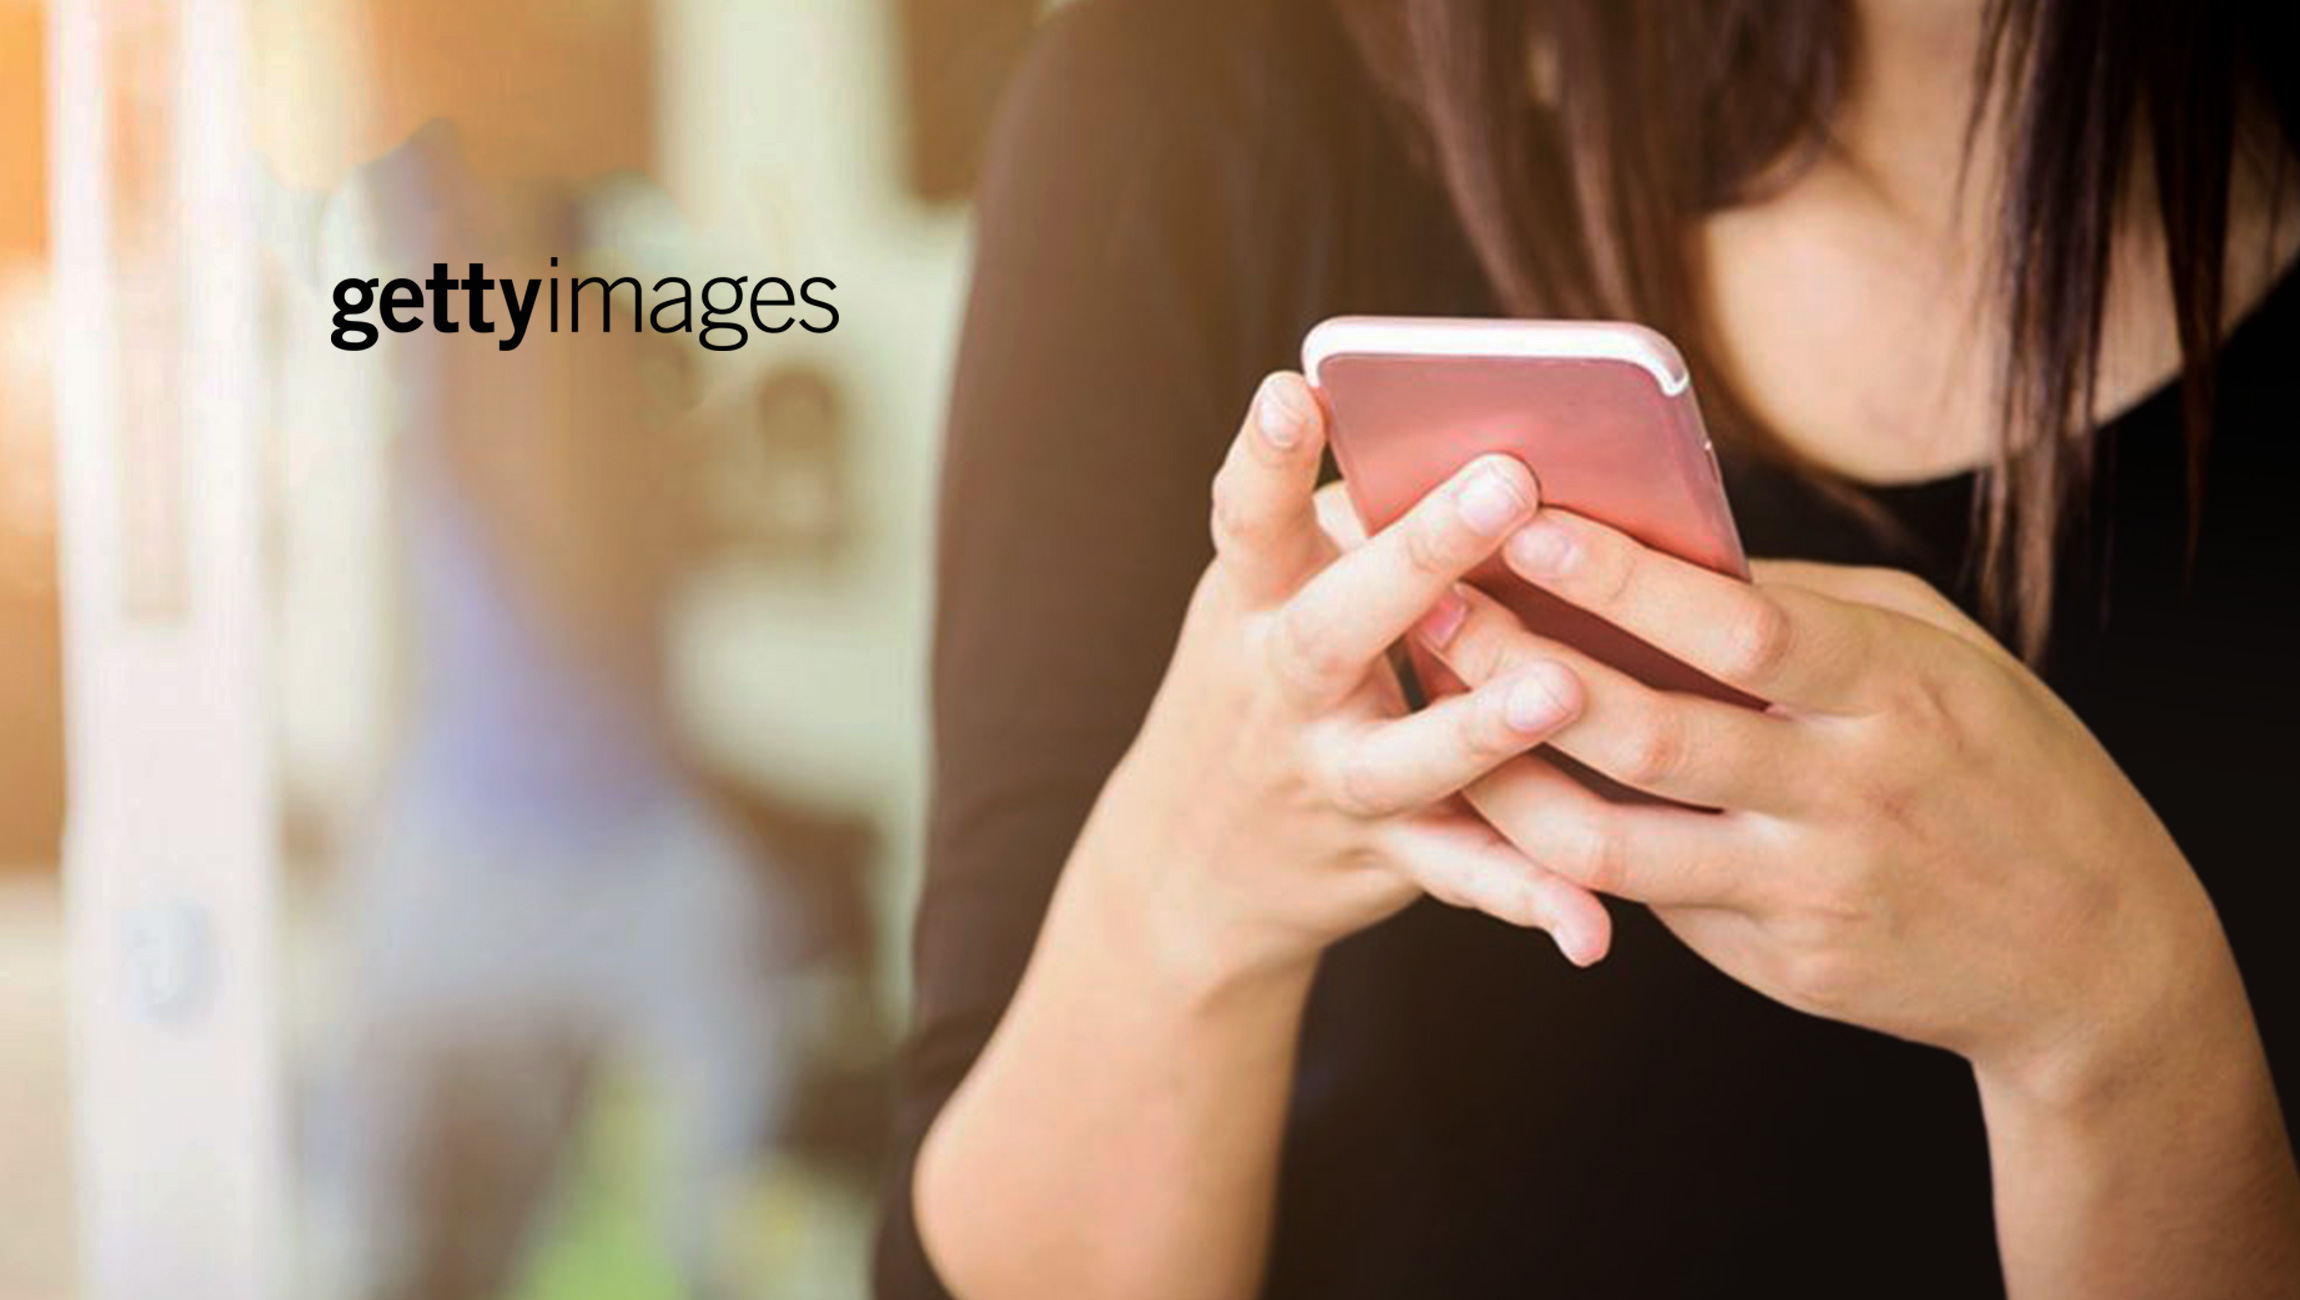 Getty Images Selected by Nestlé as Preferred Provider for All Visual Content